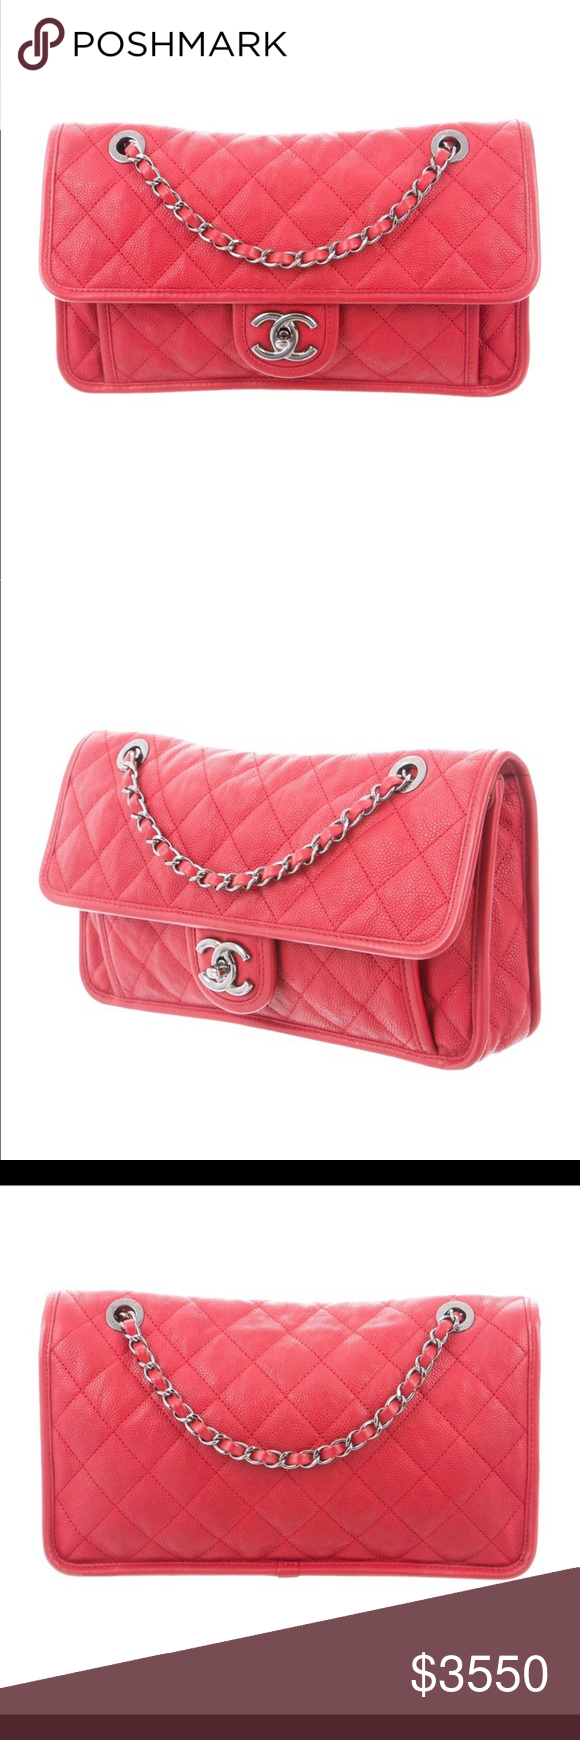 959d812530a208 CHANEL Red Caviar Leather Medium Mademoiselle Bag AUTHENTIC! - Red quilted caviar  leather Chanel Medium